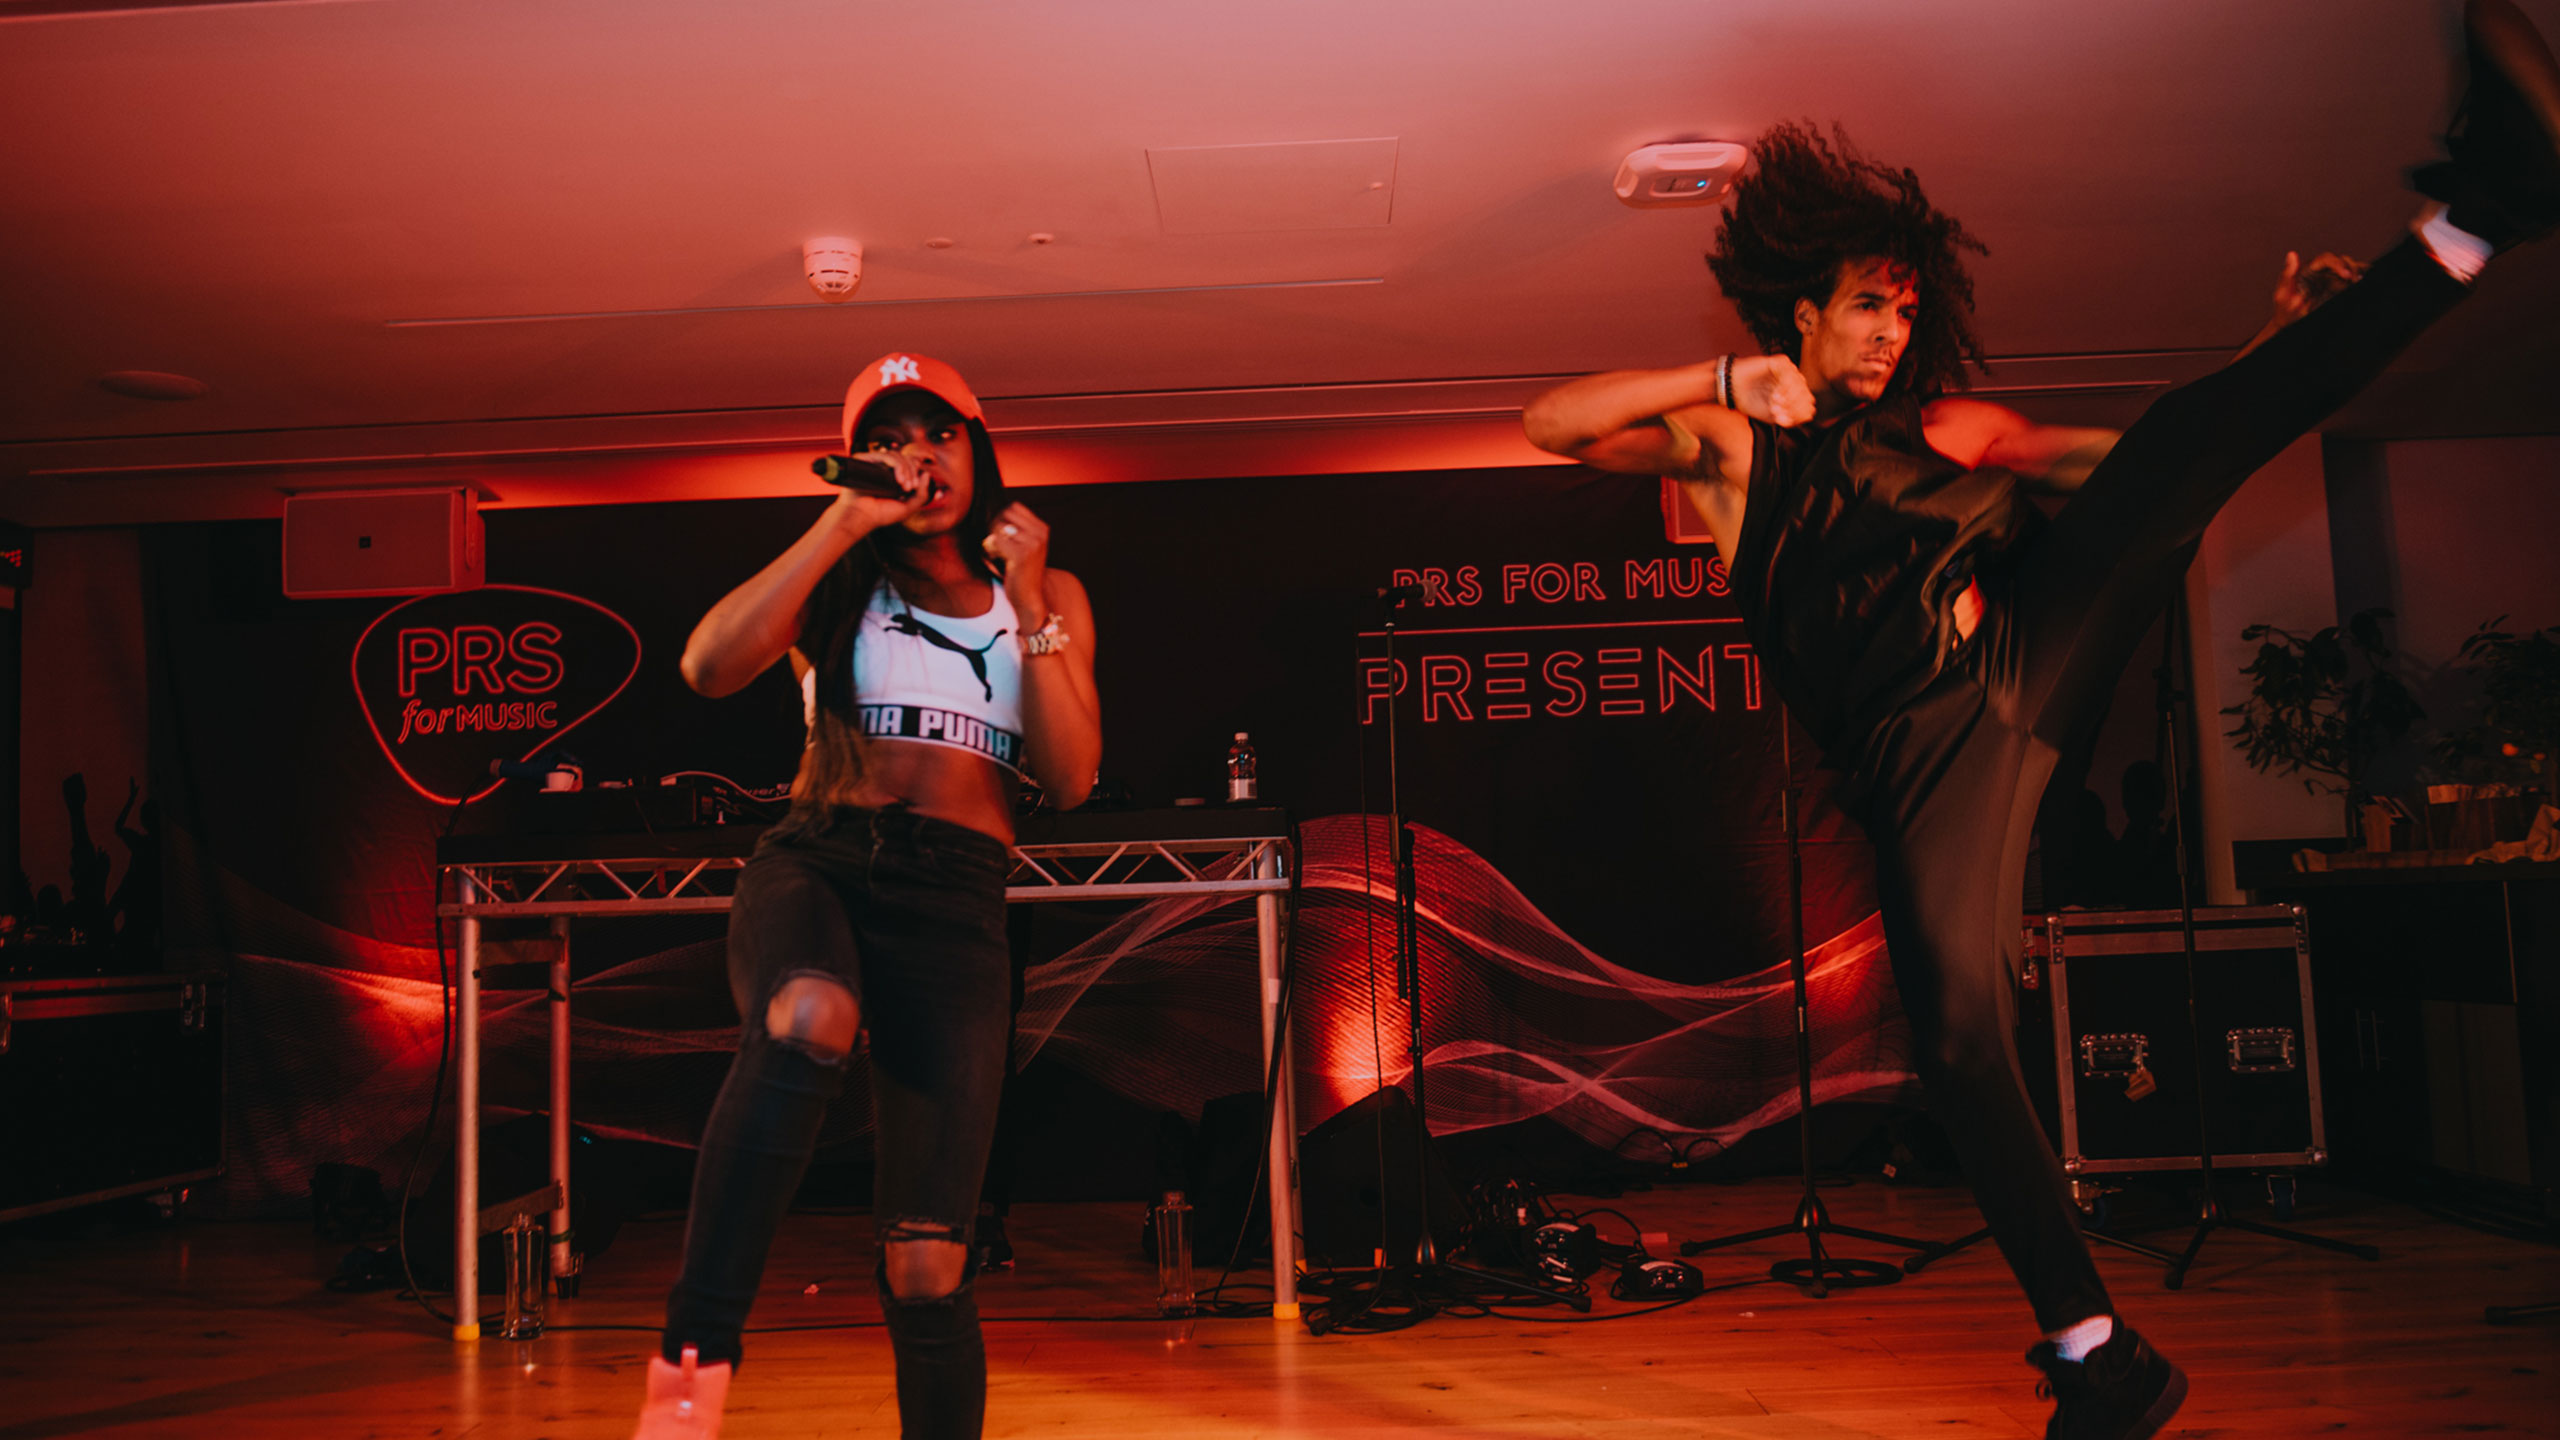 Lady Leshurr and a dancer doing a high kick performing at PRS for Music Presents